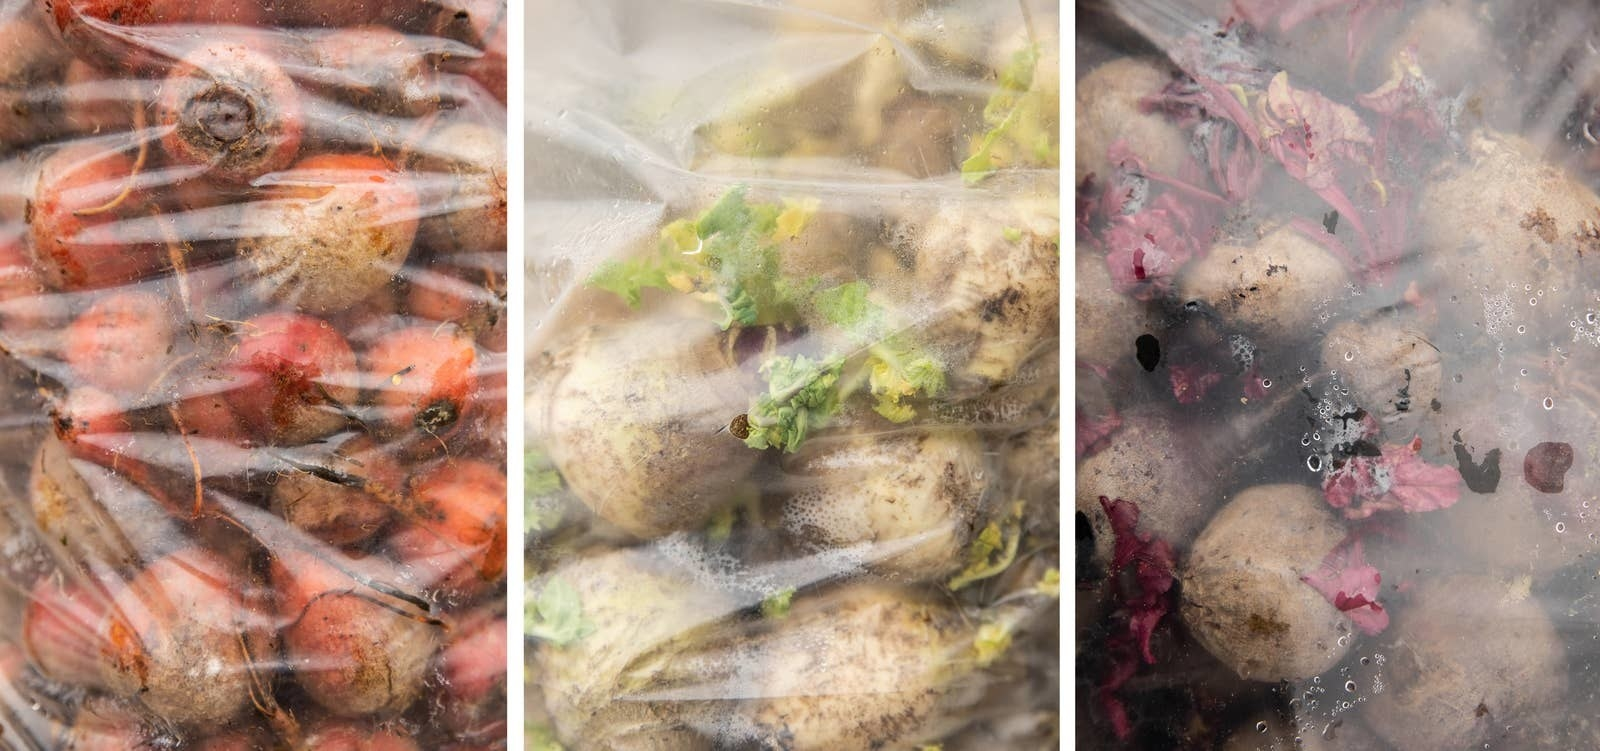 Three plastic bags with beets in them